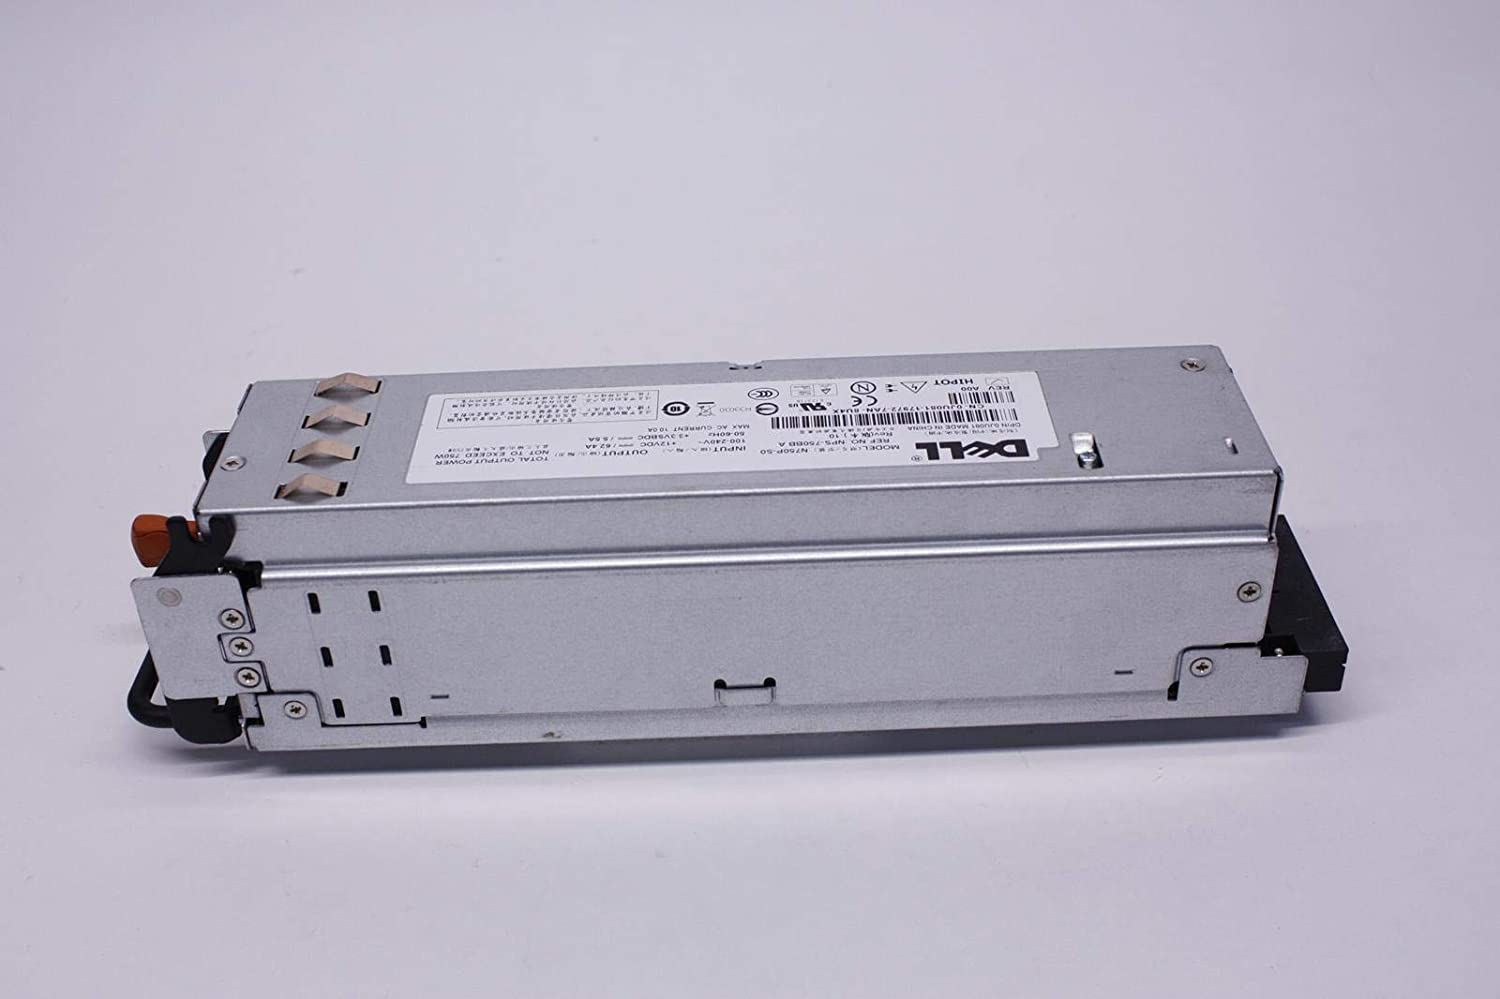 Genuine Dell 750W Watt KT838 JX399 N750P-S0 Redundant Power Supply Unit PSU For PowerEdge 2950 and PowerEdge 2970 Systems Compatible Part Numbers: NY526, RX833, W258D, X404H, GM266, JX399, JU081, Y8132, KT838, C901D, M076R Compatible Dell Model Numbers: Z750P-00, N750P-S1, NPS-750BB A, N750P-50, 7001072-Y000, N750P-S0